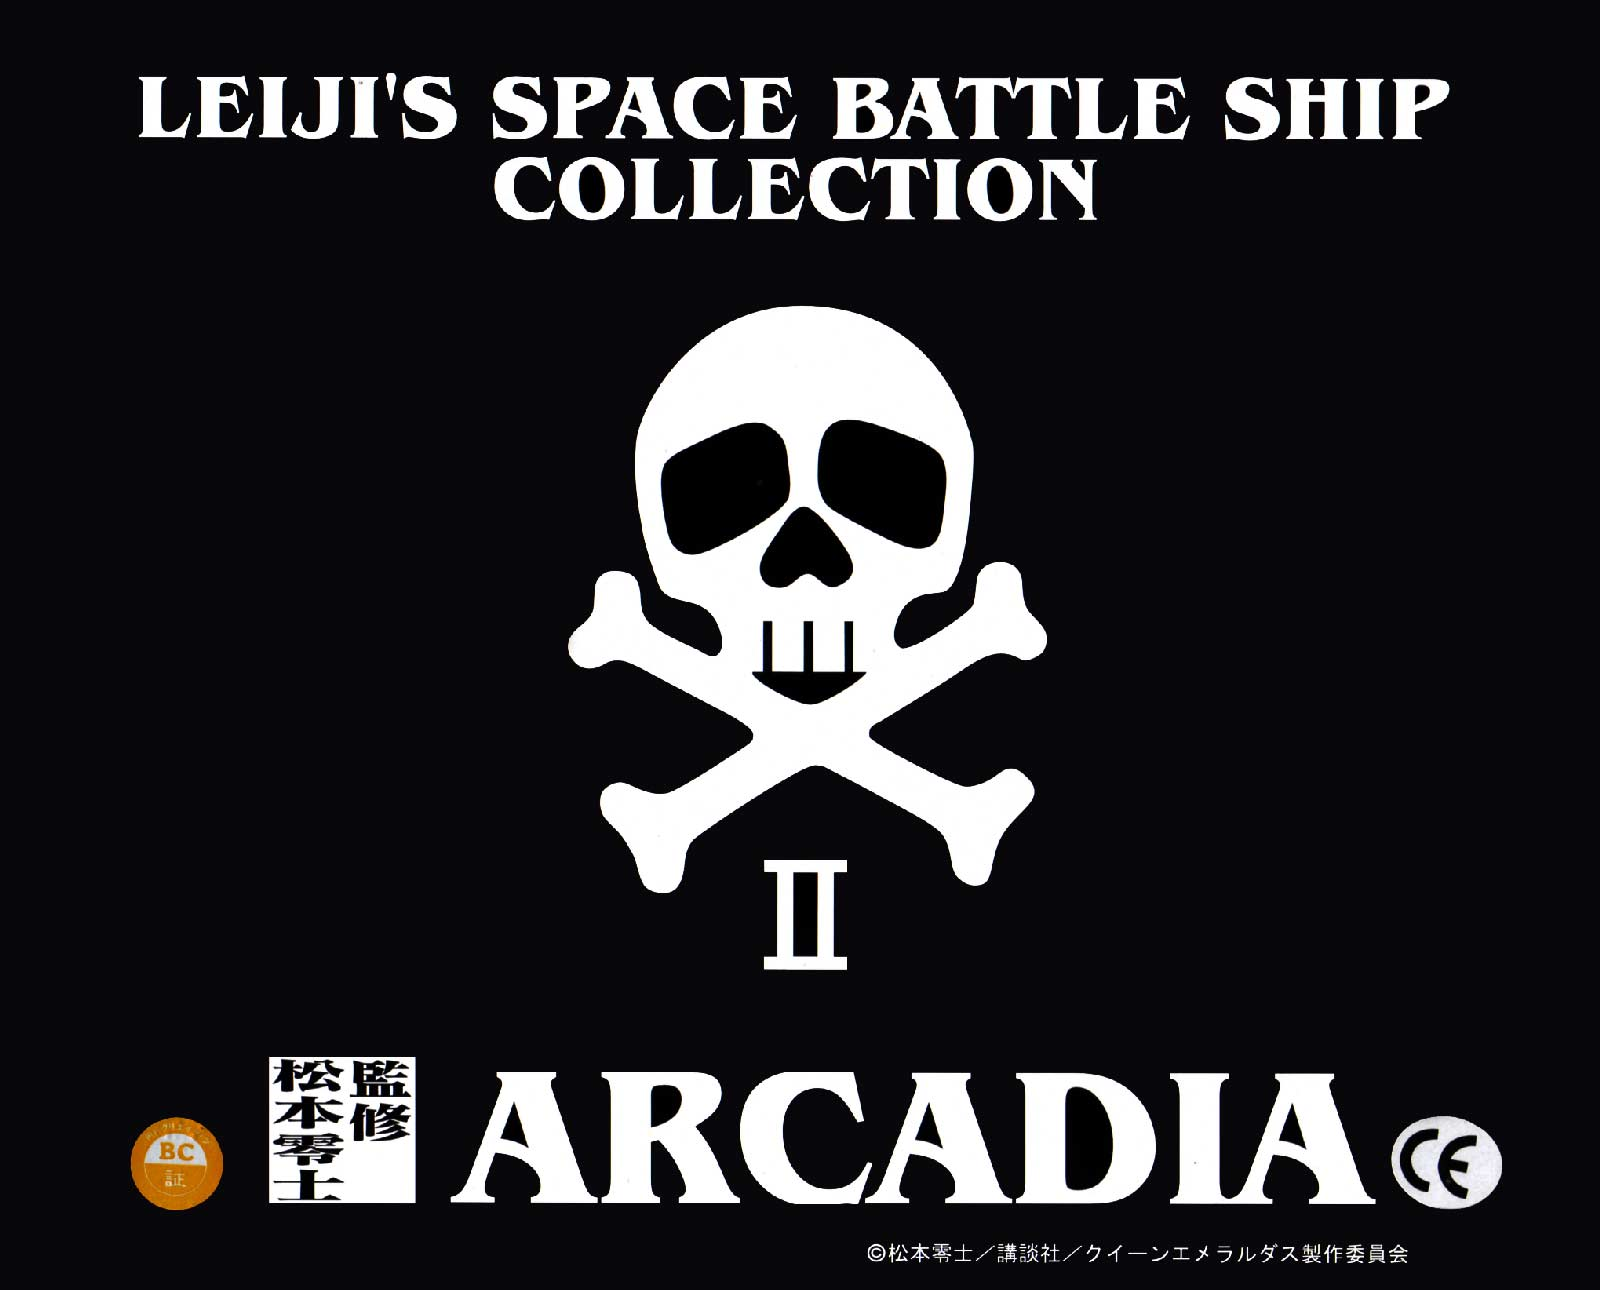 Packaging (dessus) de l'Arcadia de Mabell de la collection Leiji's Space ship